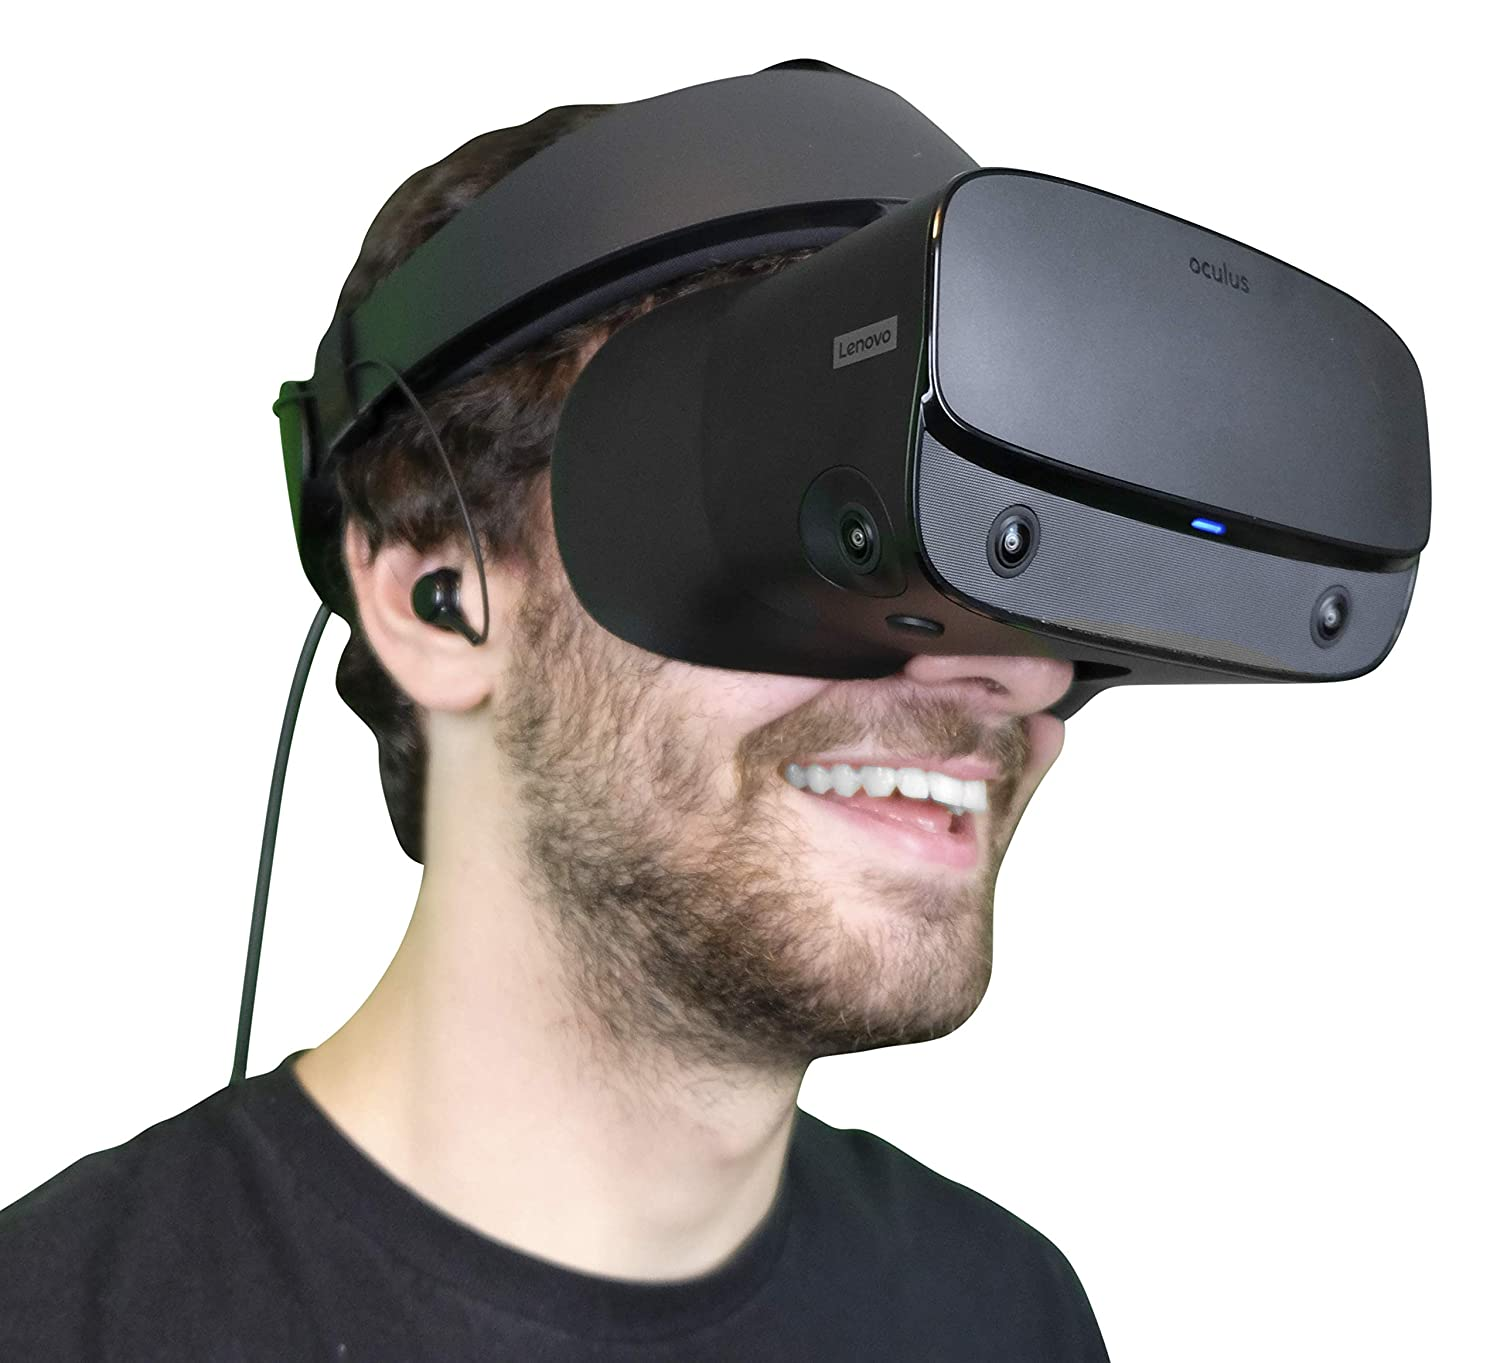 DeadEyeVR Integrated Rift S Headphones - Rift S Specific Headphones That Conveniently Attach to the Oculus Rift S Headset